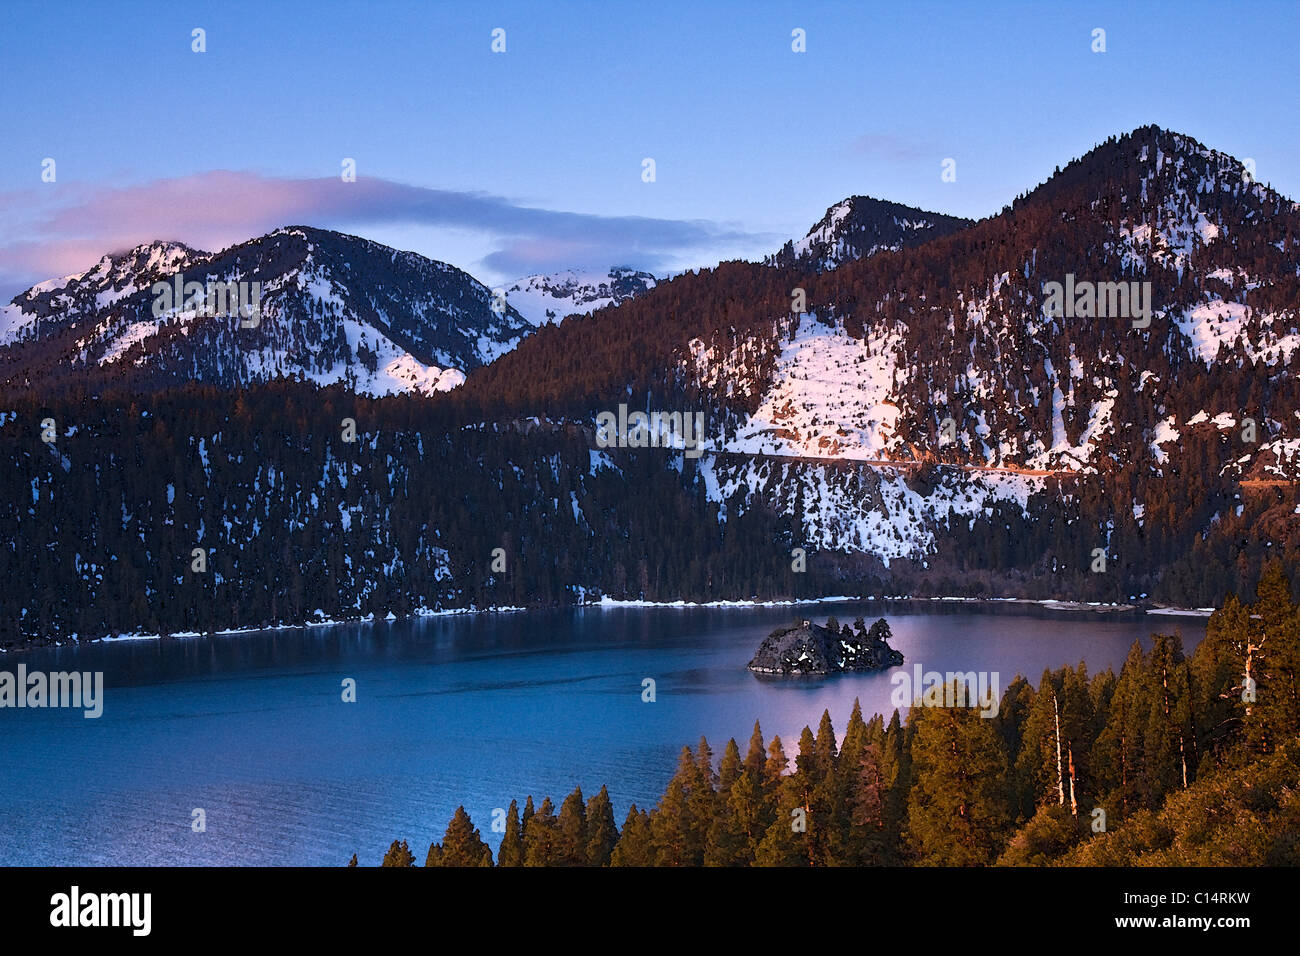 A watercolor of Emerald Bay, Wizard Island, and snow at Lake Tahoe in California - Stock Image